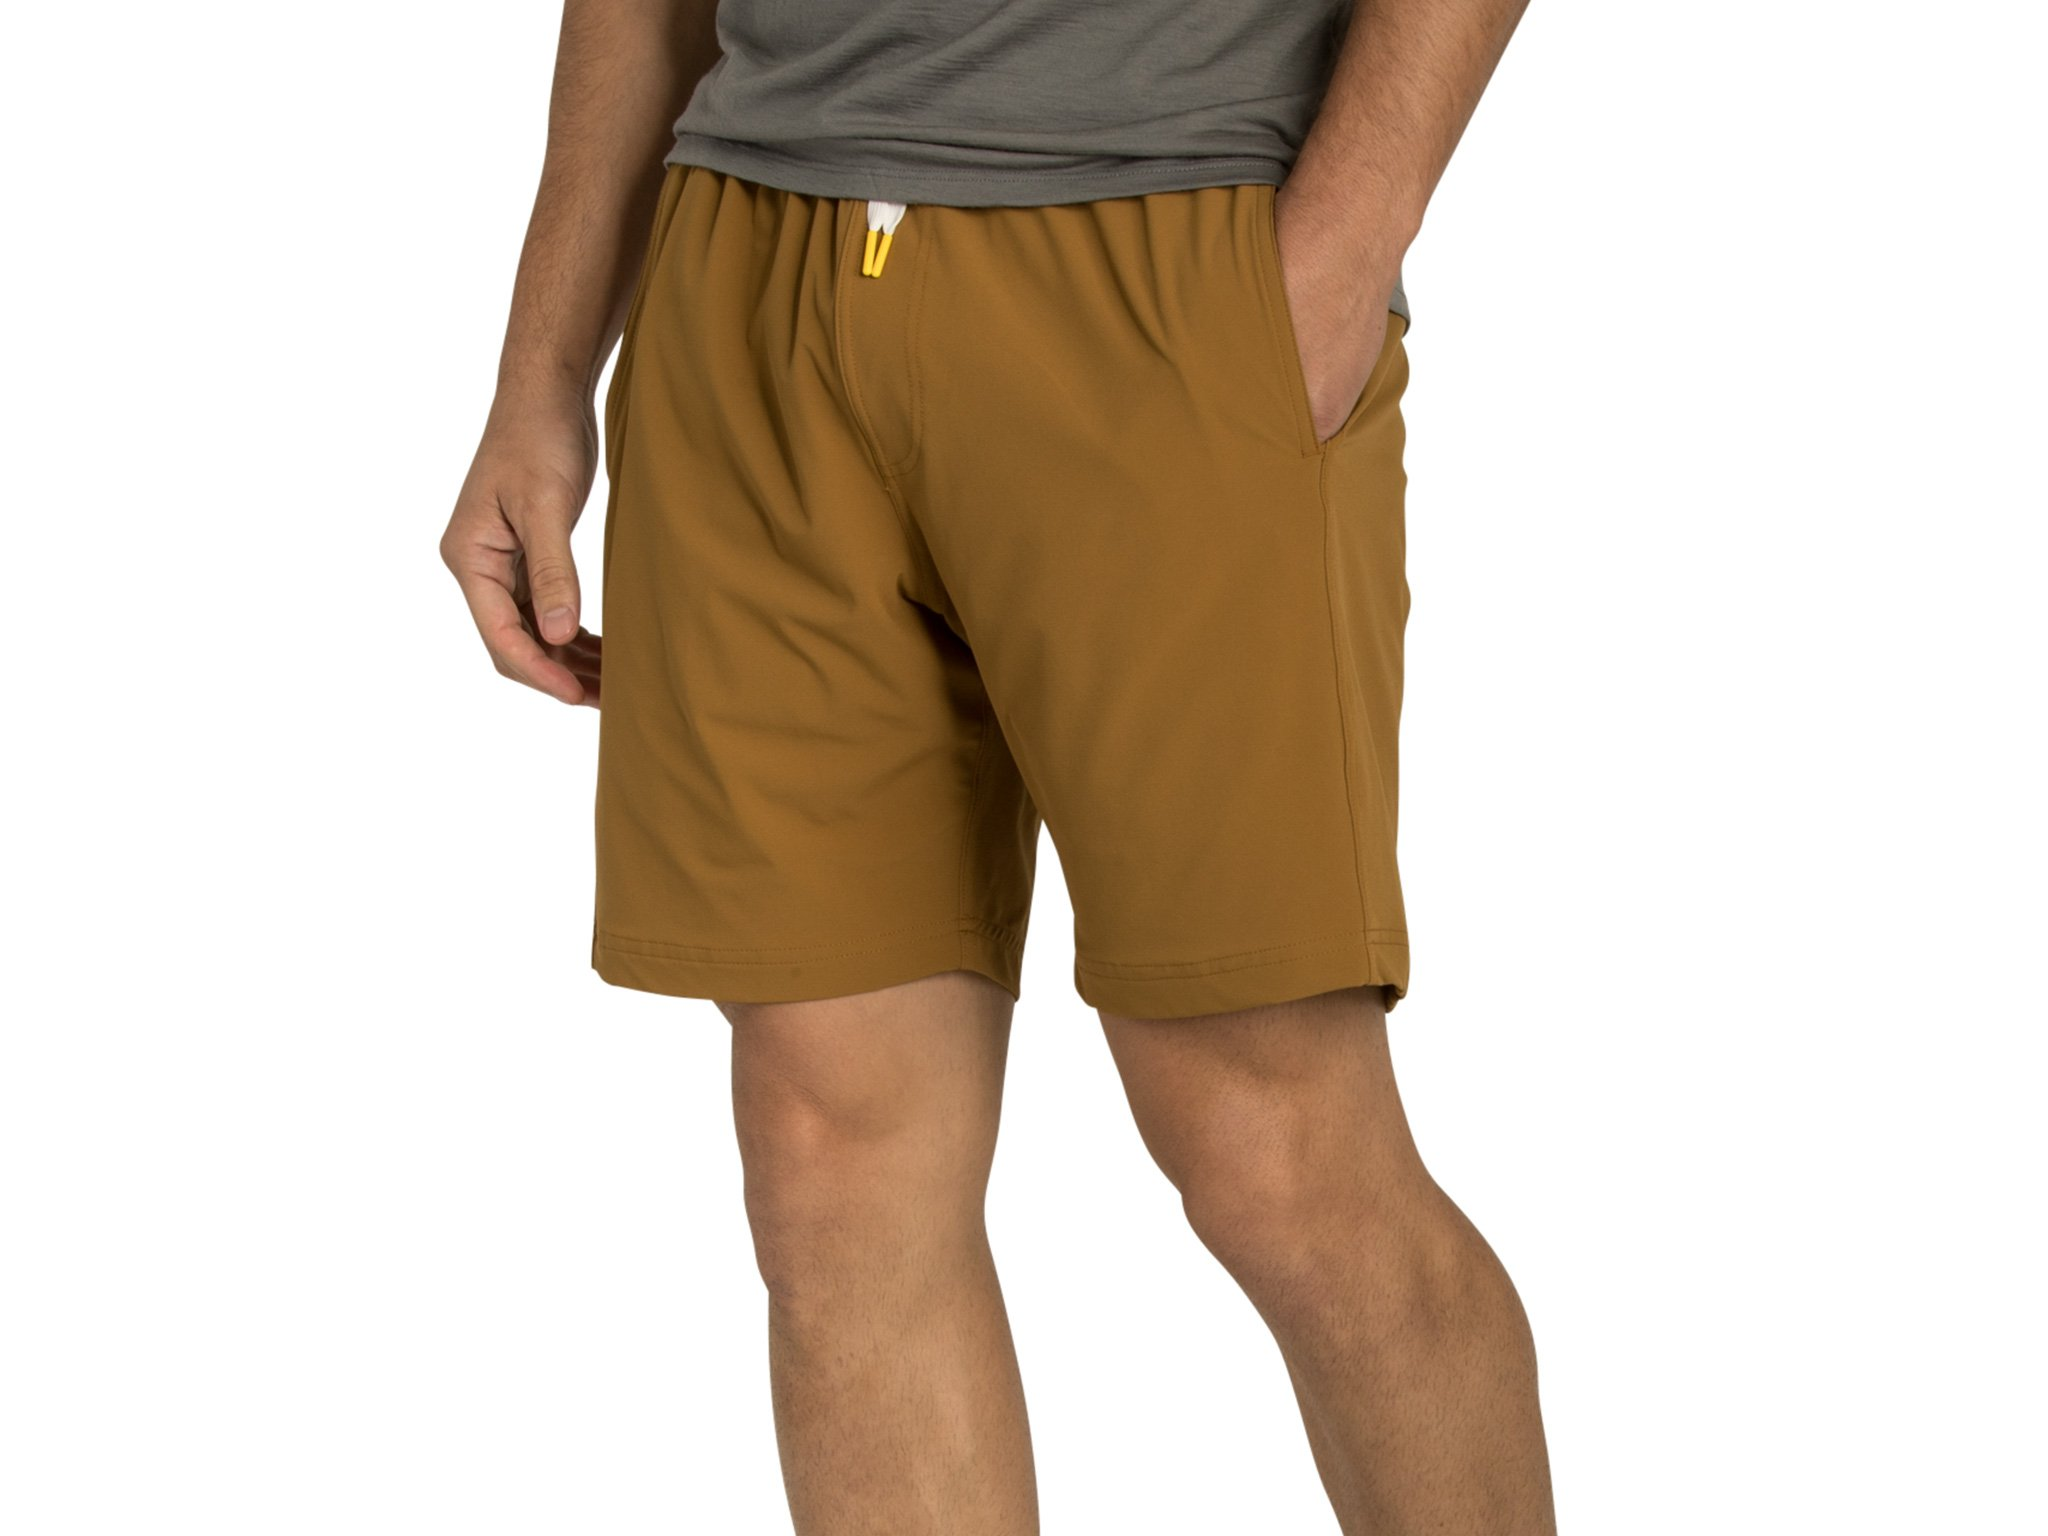 OLIVERS Apparel, Mens Water Repellent, 4-Way Stretch, All Over Short. Perfect Running, Yoga Weightlifting - (Copper, Extra Large)